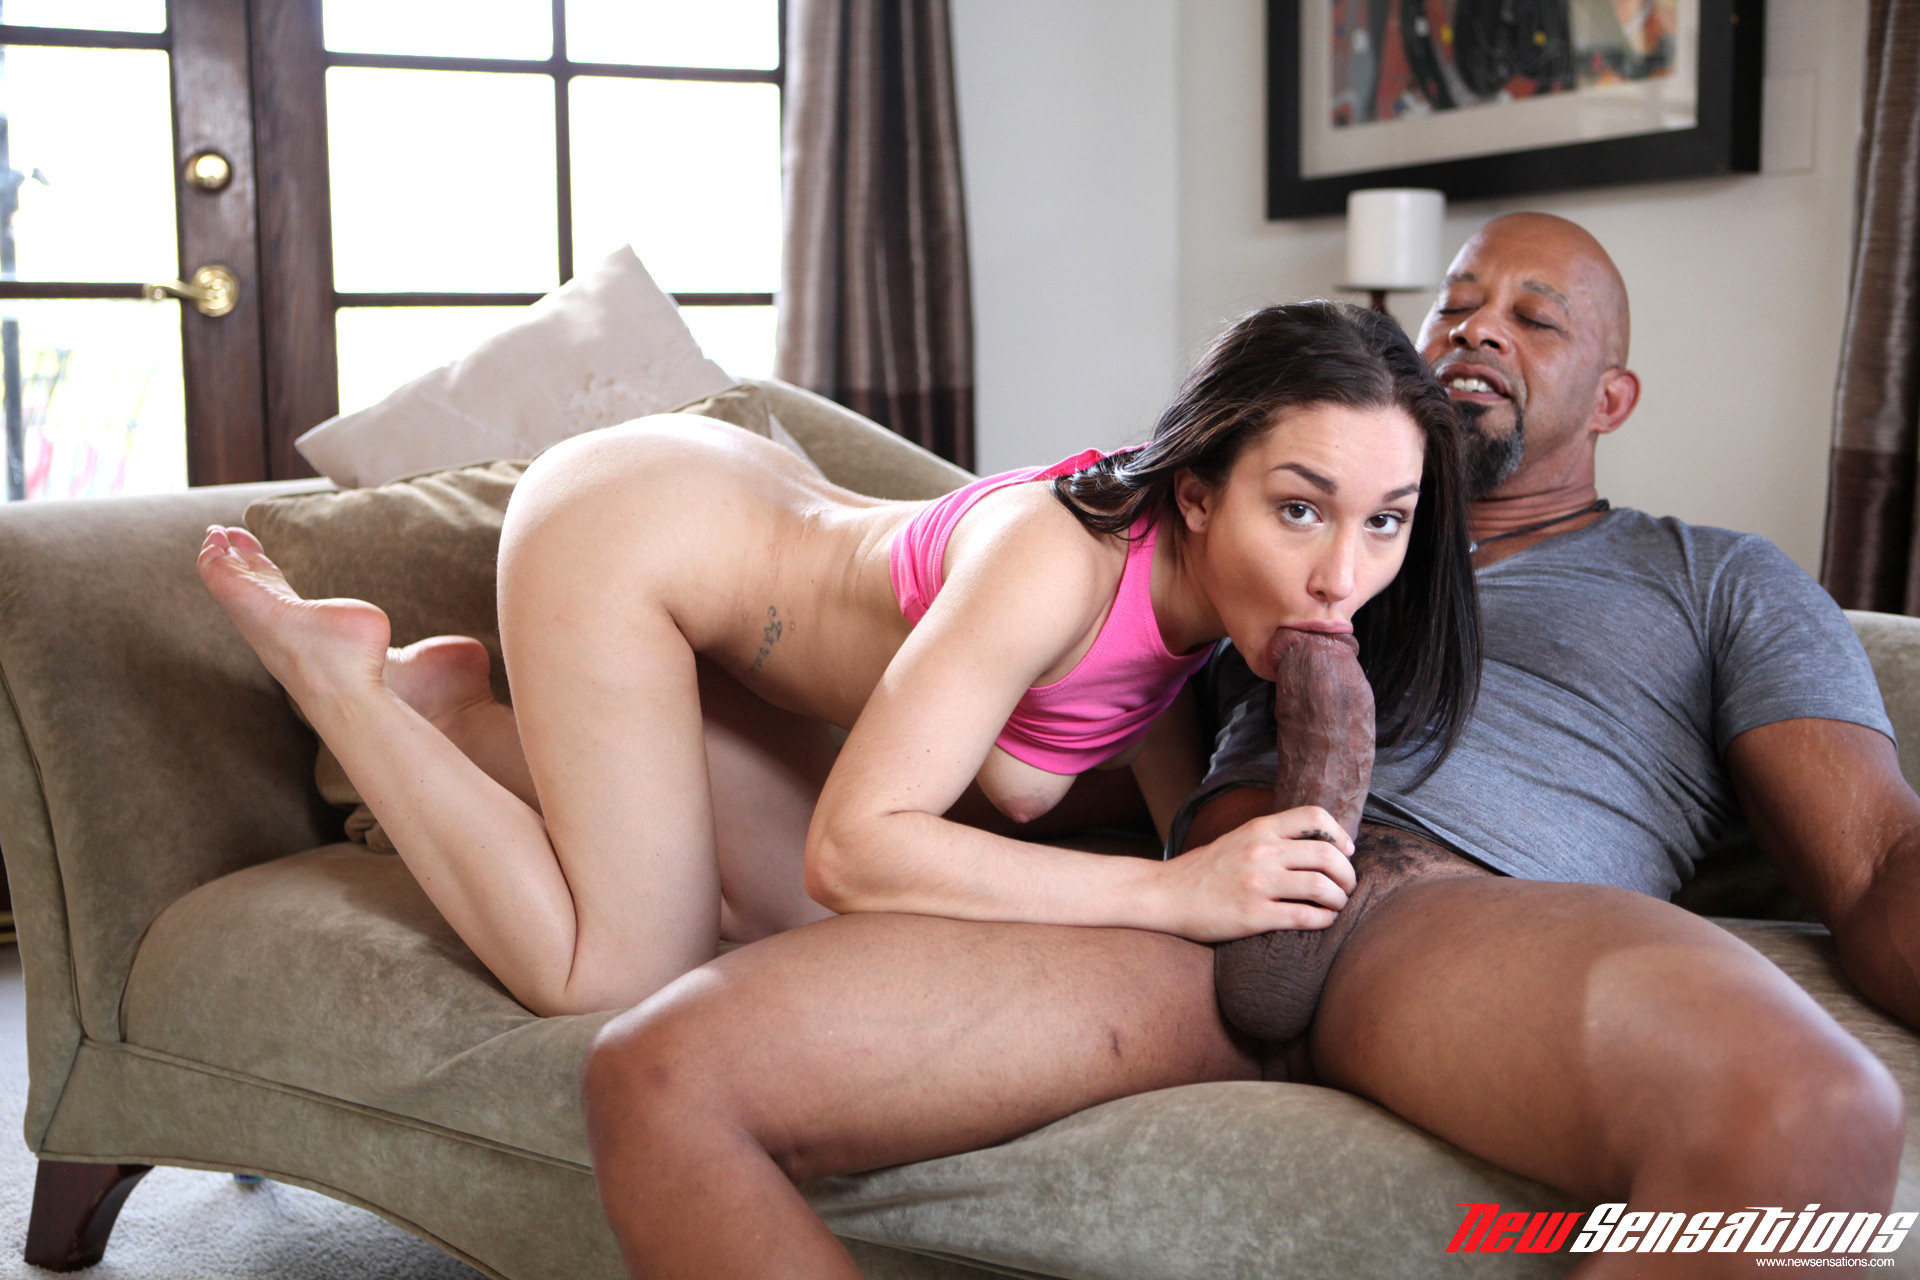 Baby sitter wants cock and money